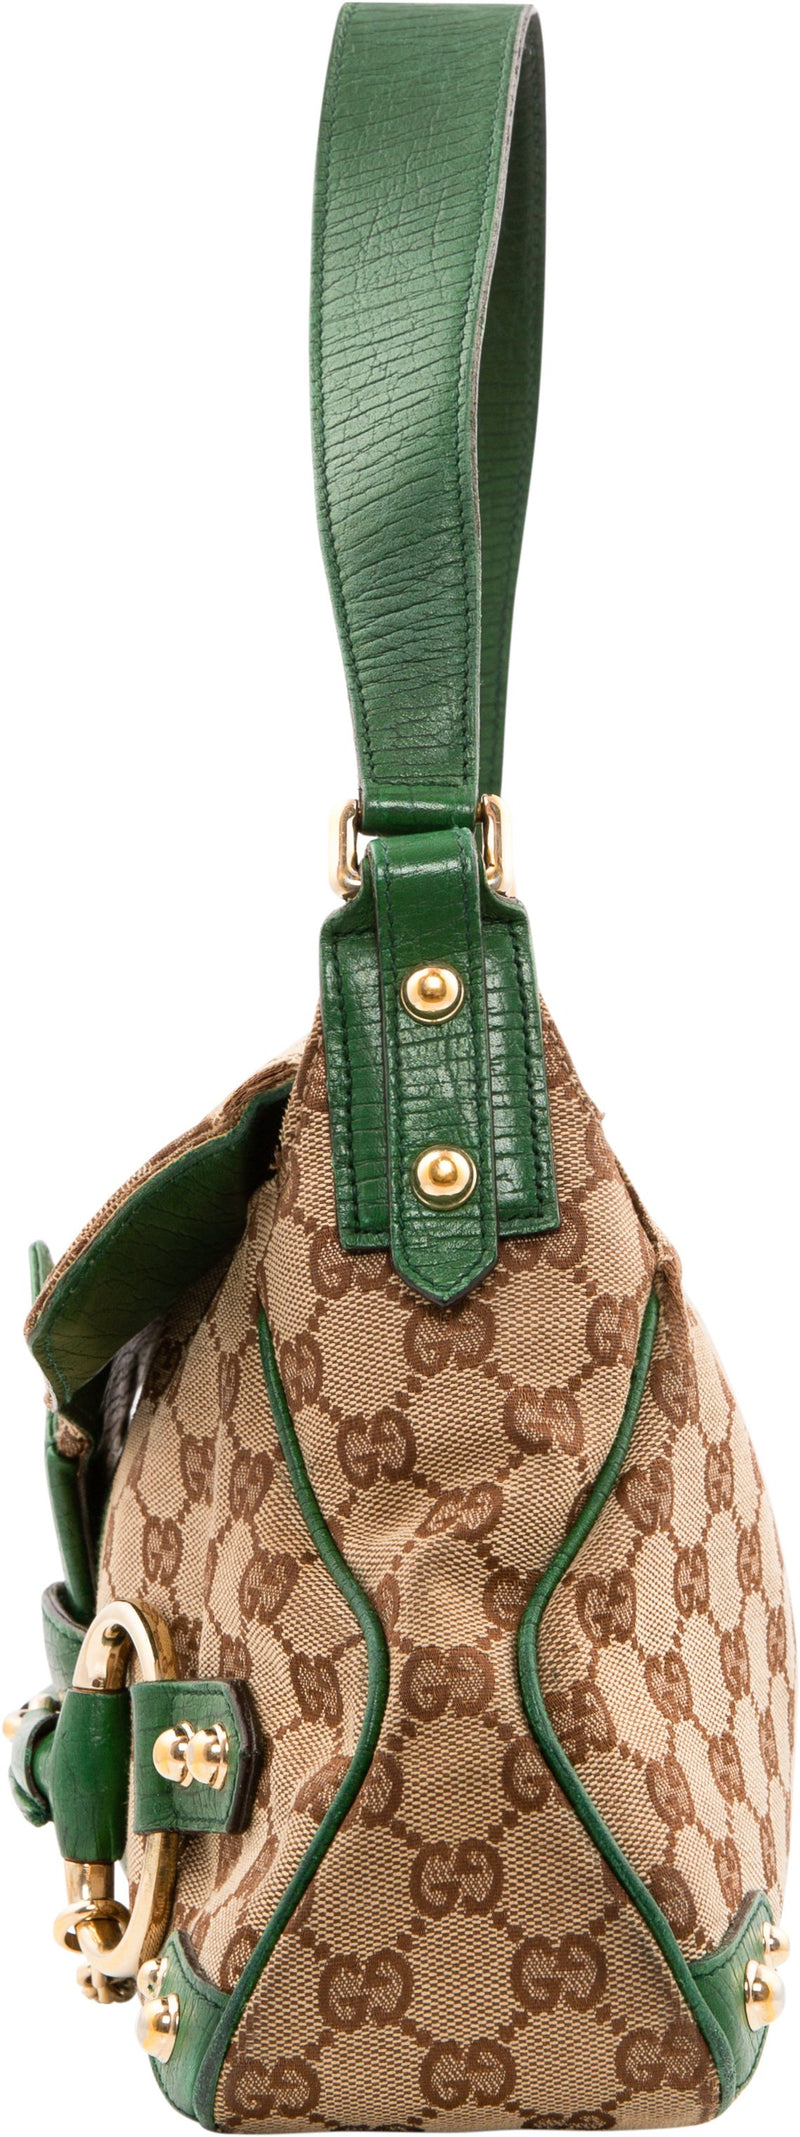 Gucci Monogram Horsebit Embellished Bag